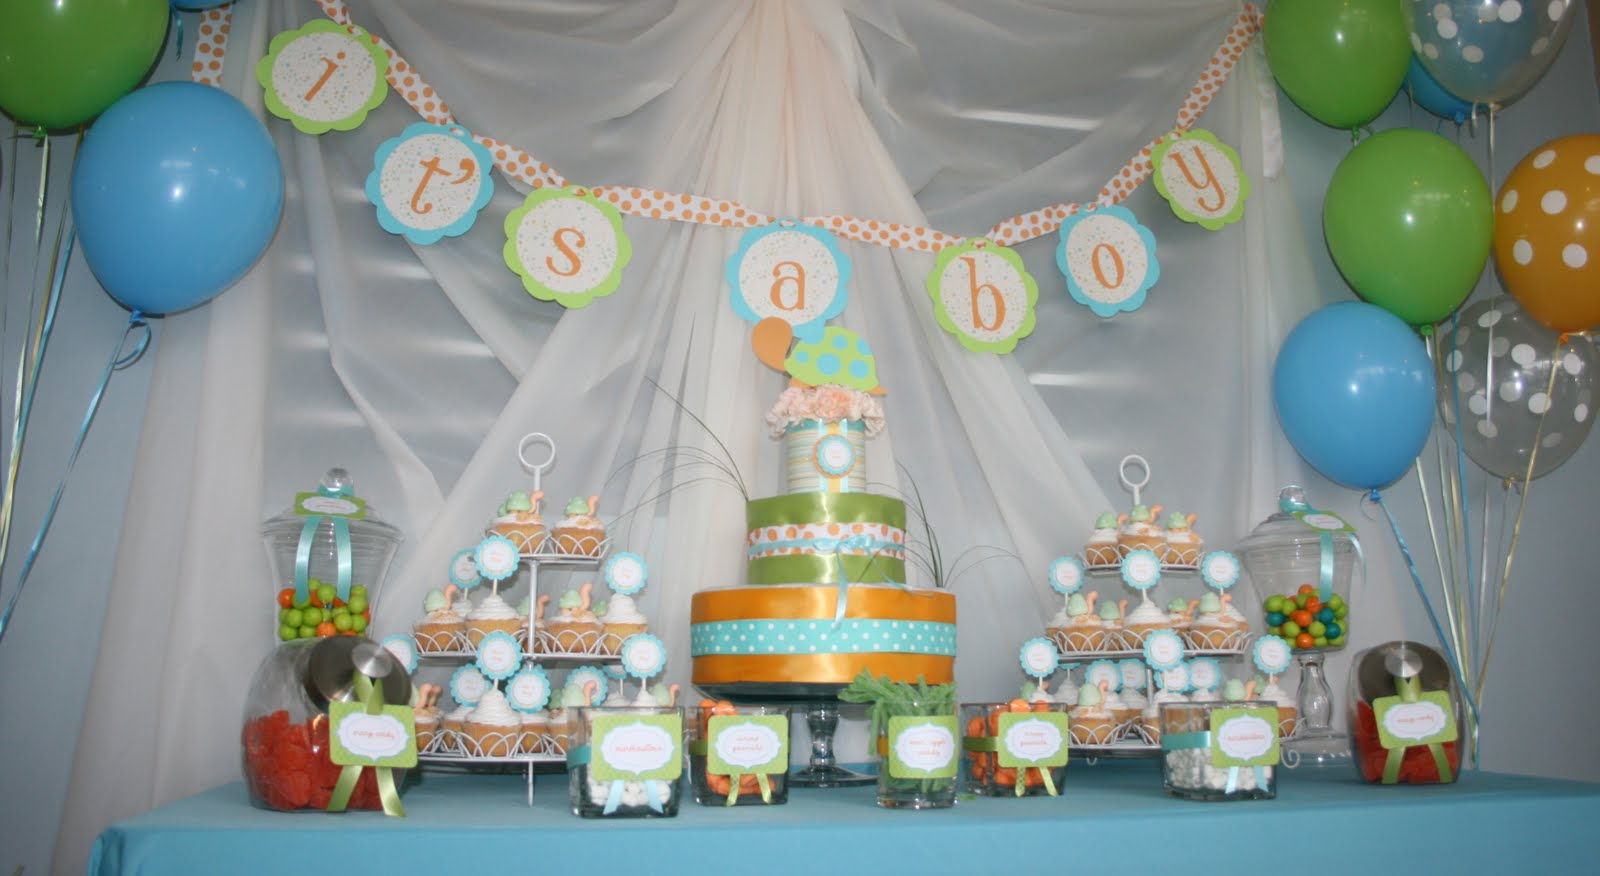 Partylicious events pr turtle baby shower for Baby decoration ideas for shower